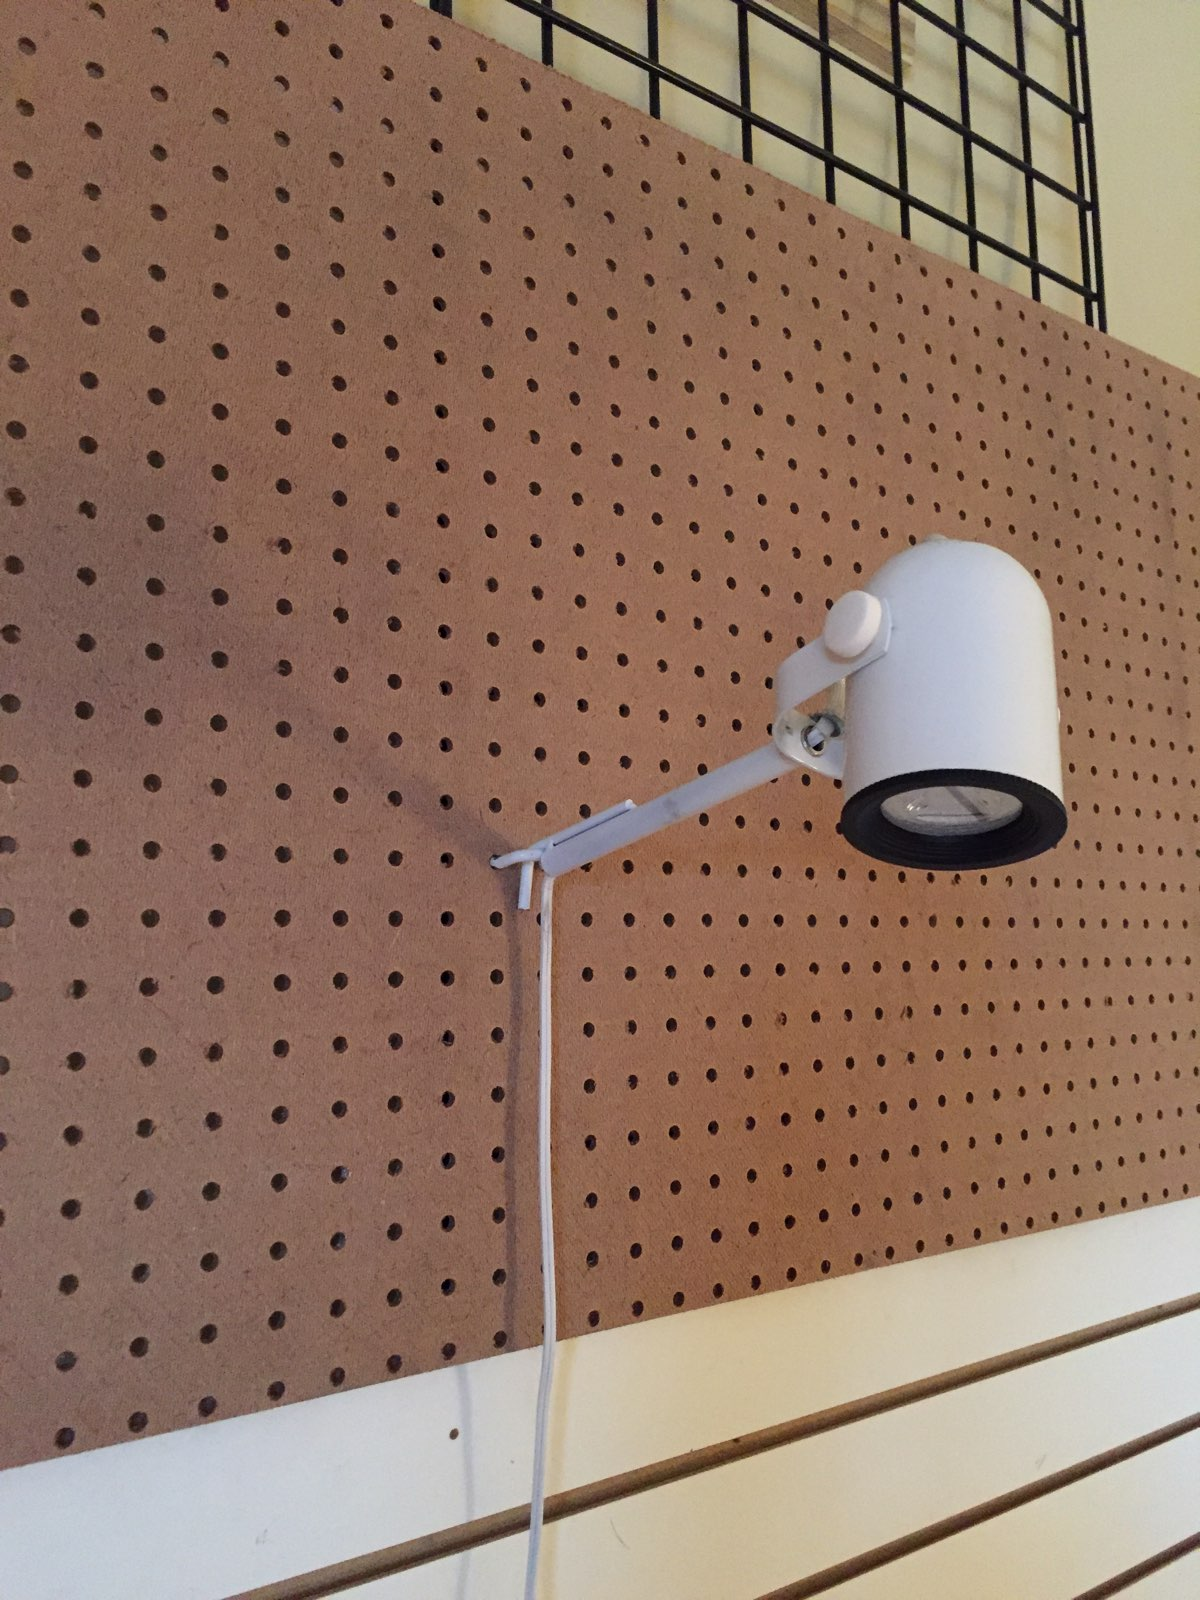 stlighting-pegboard-worklight